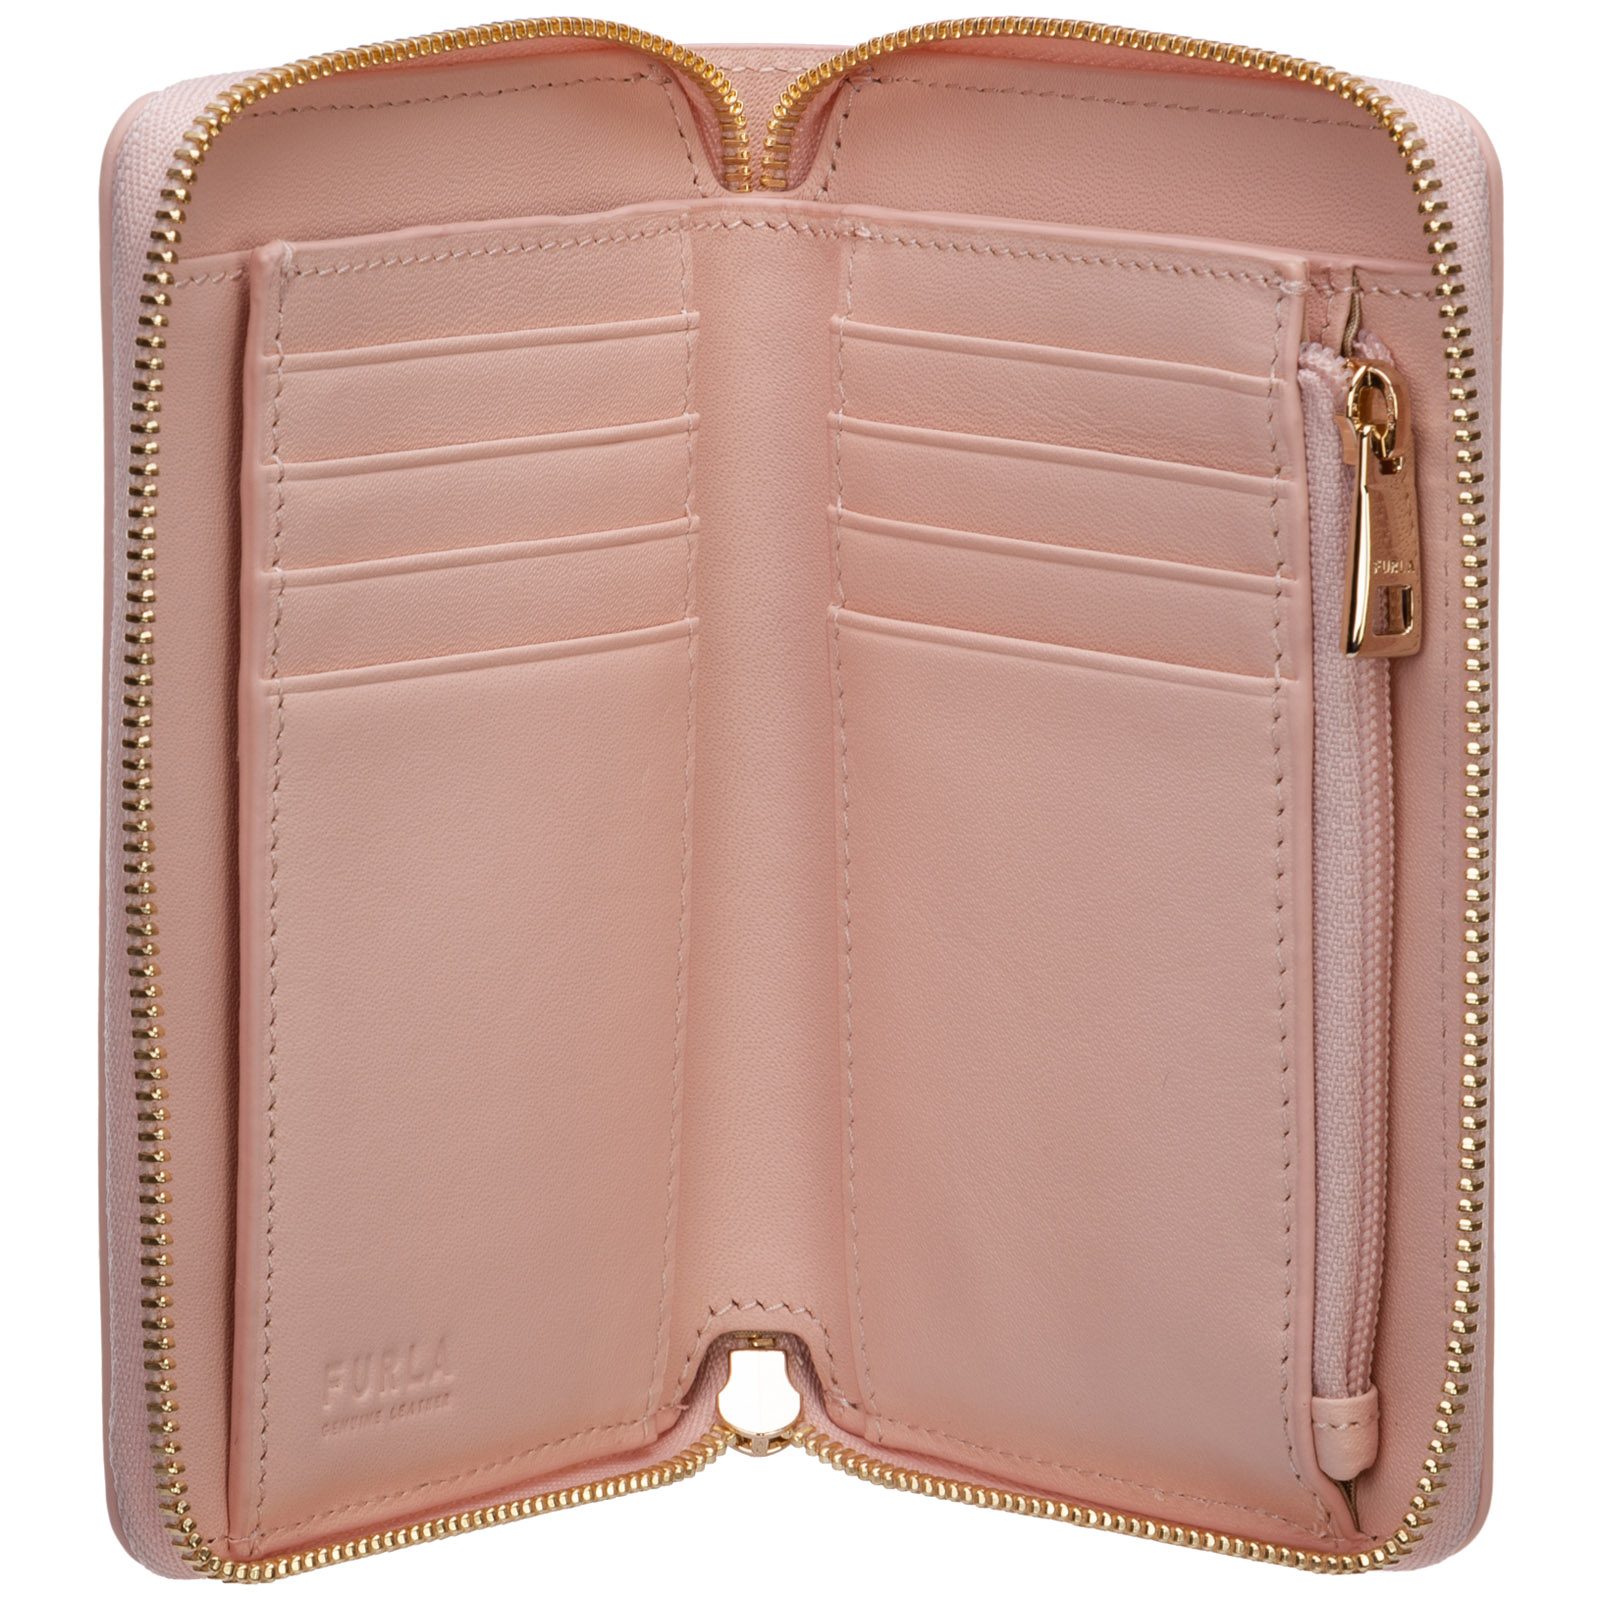 Women's wallet genuine leather coin case holder purse card rita